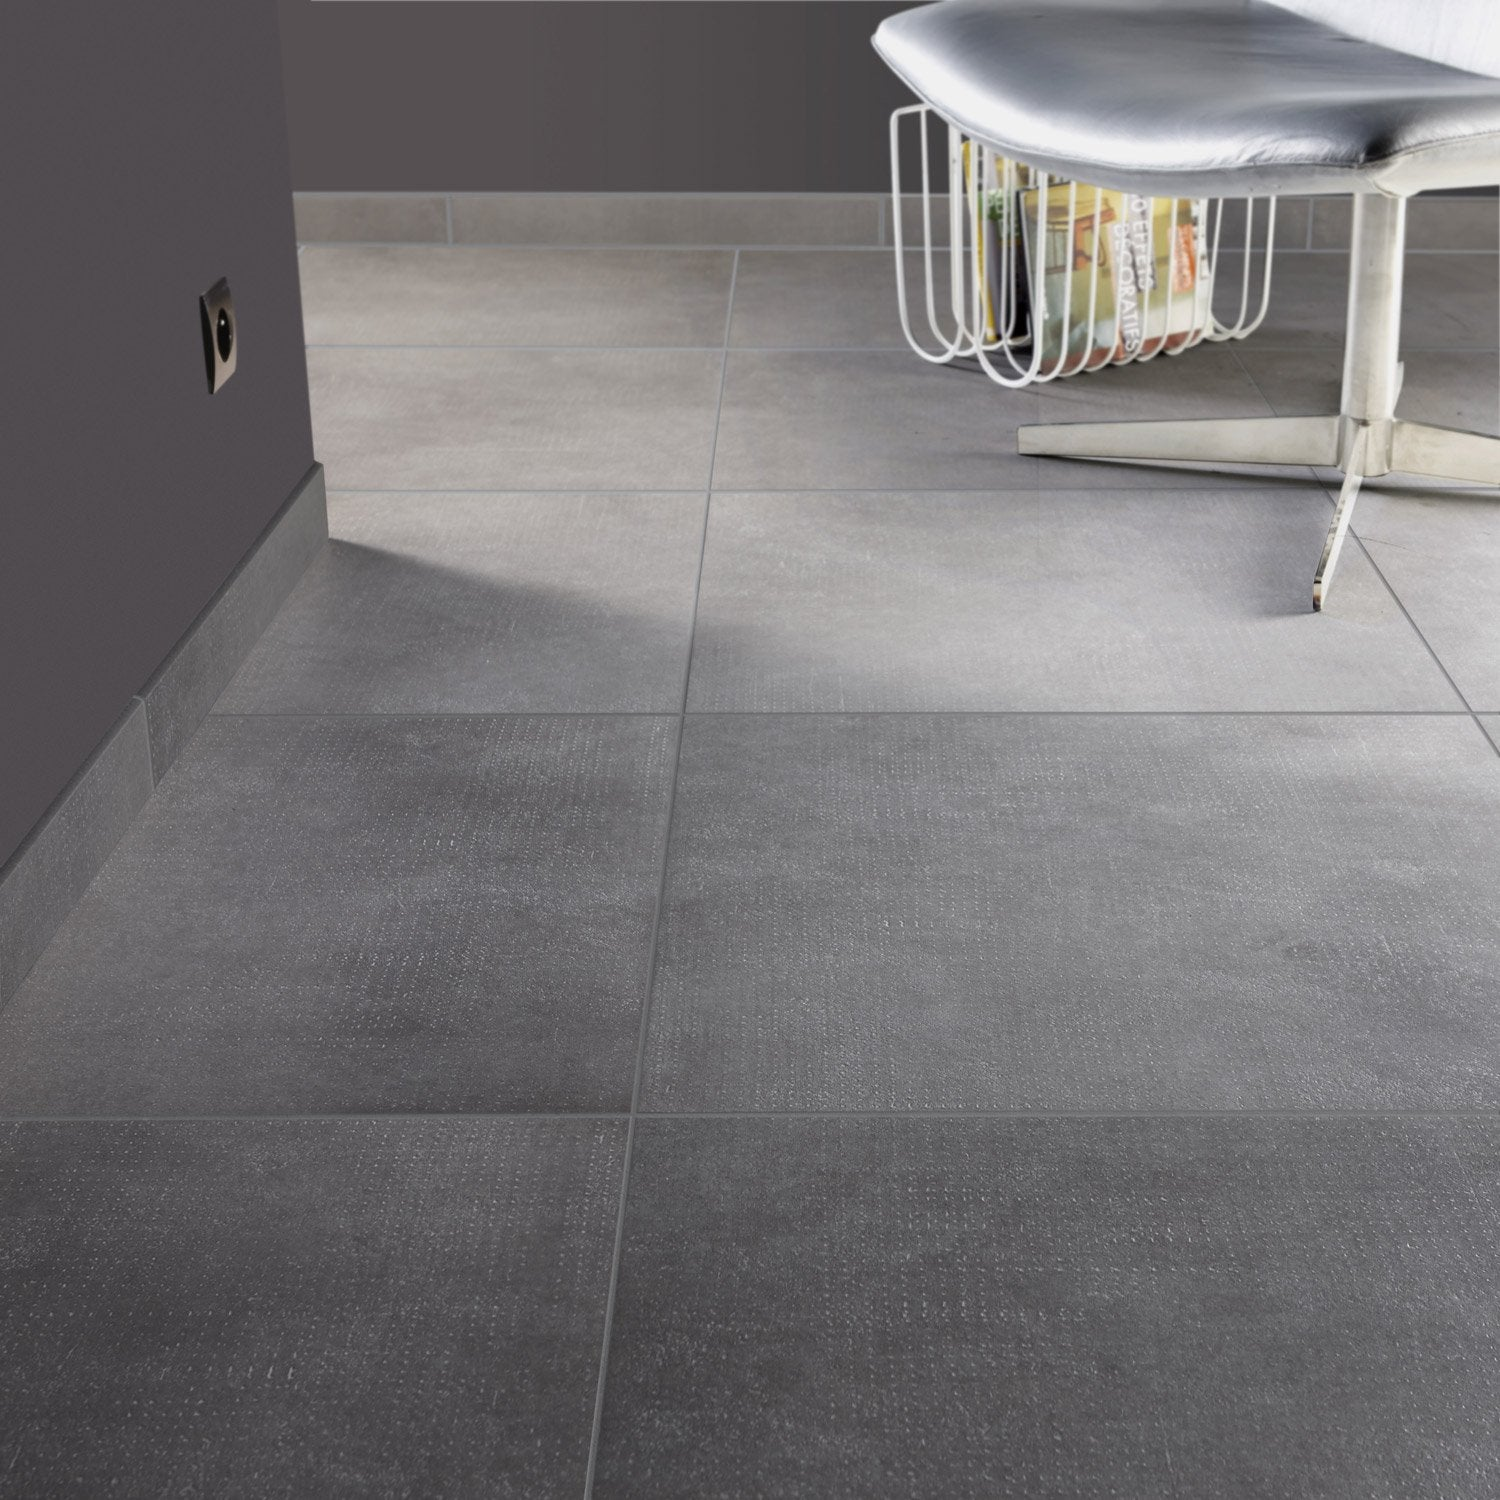 Carrelage design carrelage pour garage leroy merlin for Carrelage design